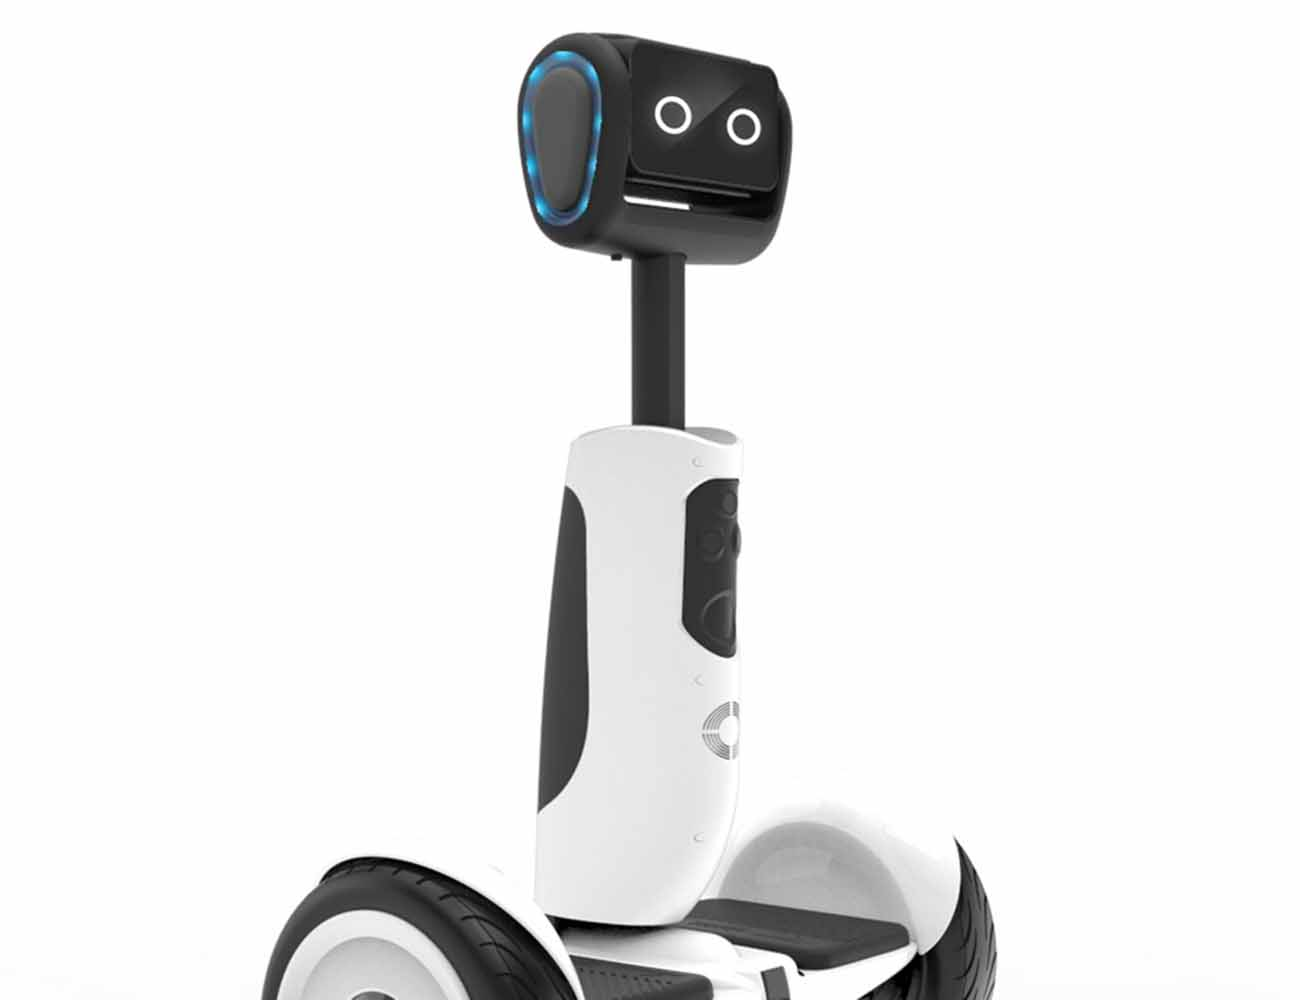 The New Segway Robot by Ninebot – Personal Mobility Gone Cuter